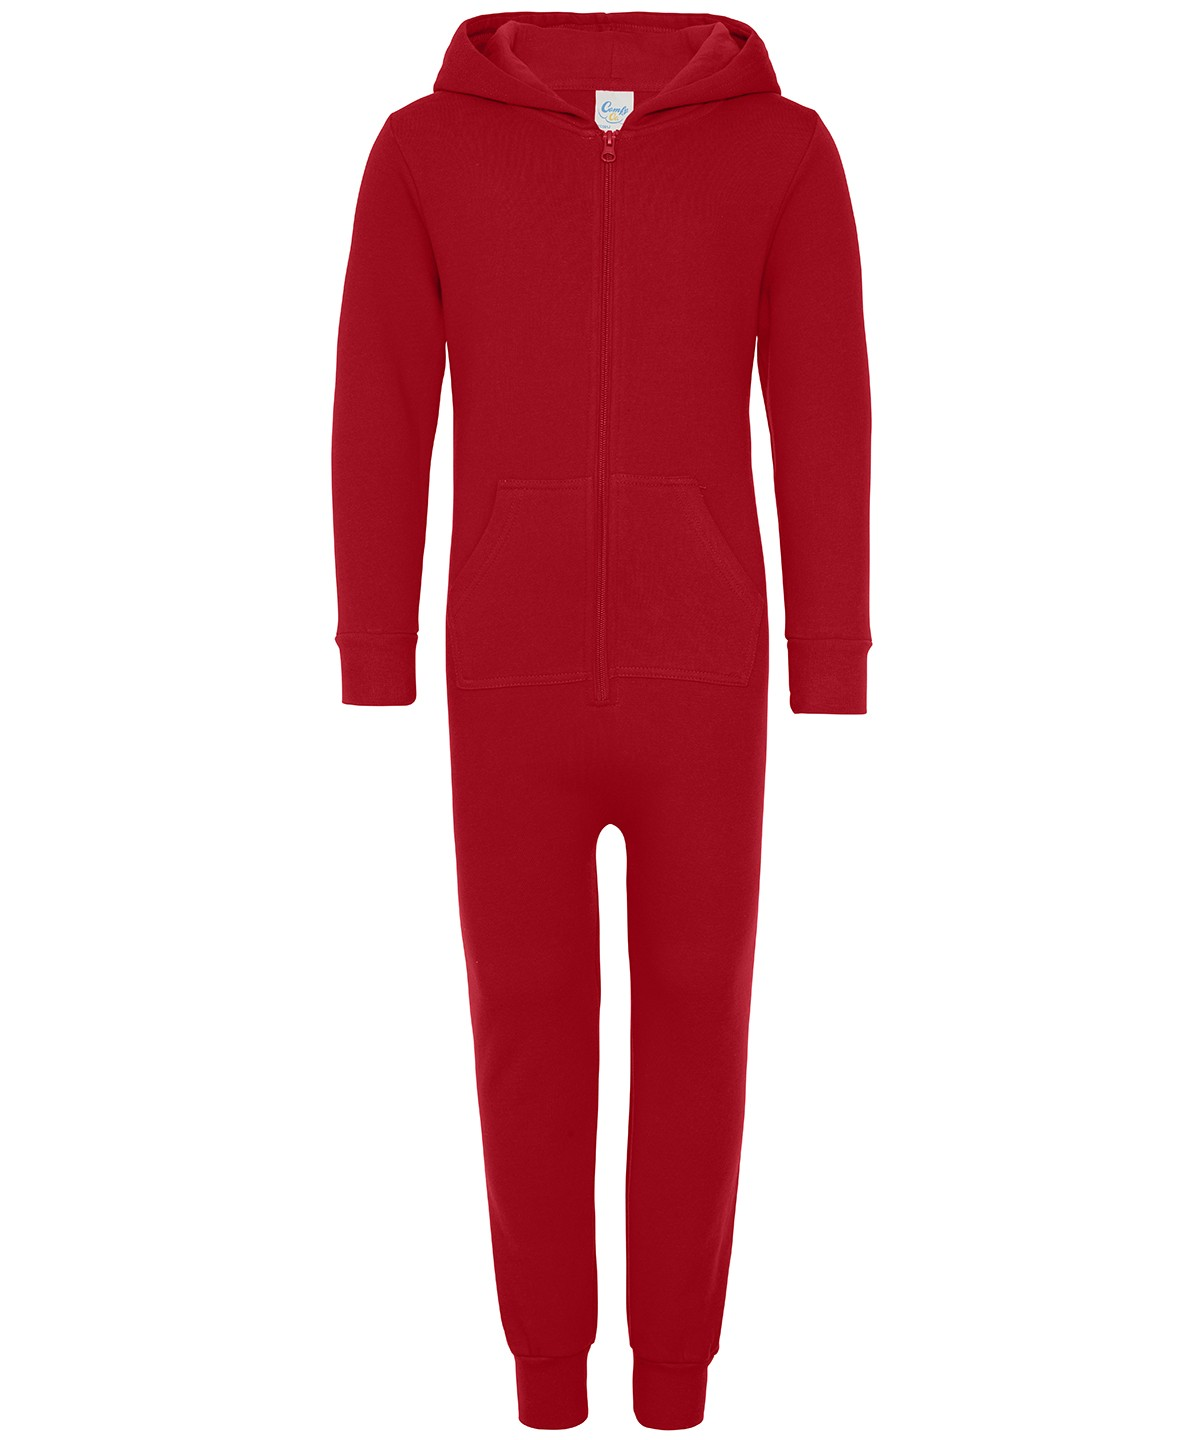 Kids All-in-one Onesie in Red